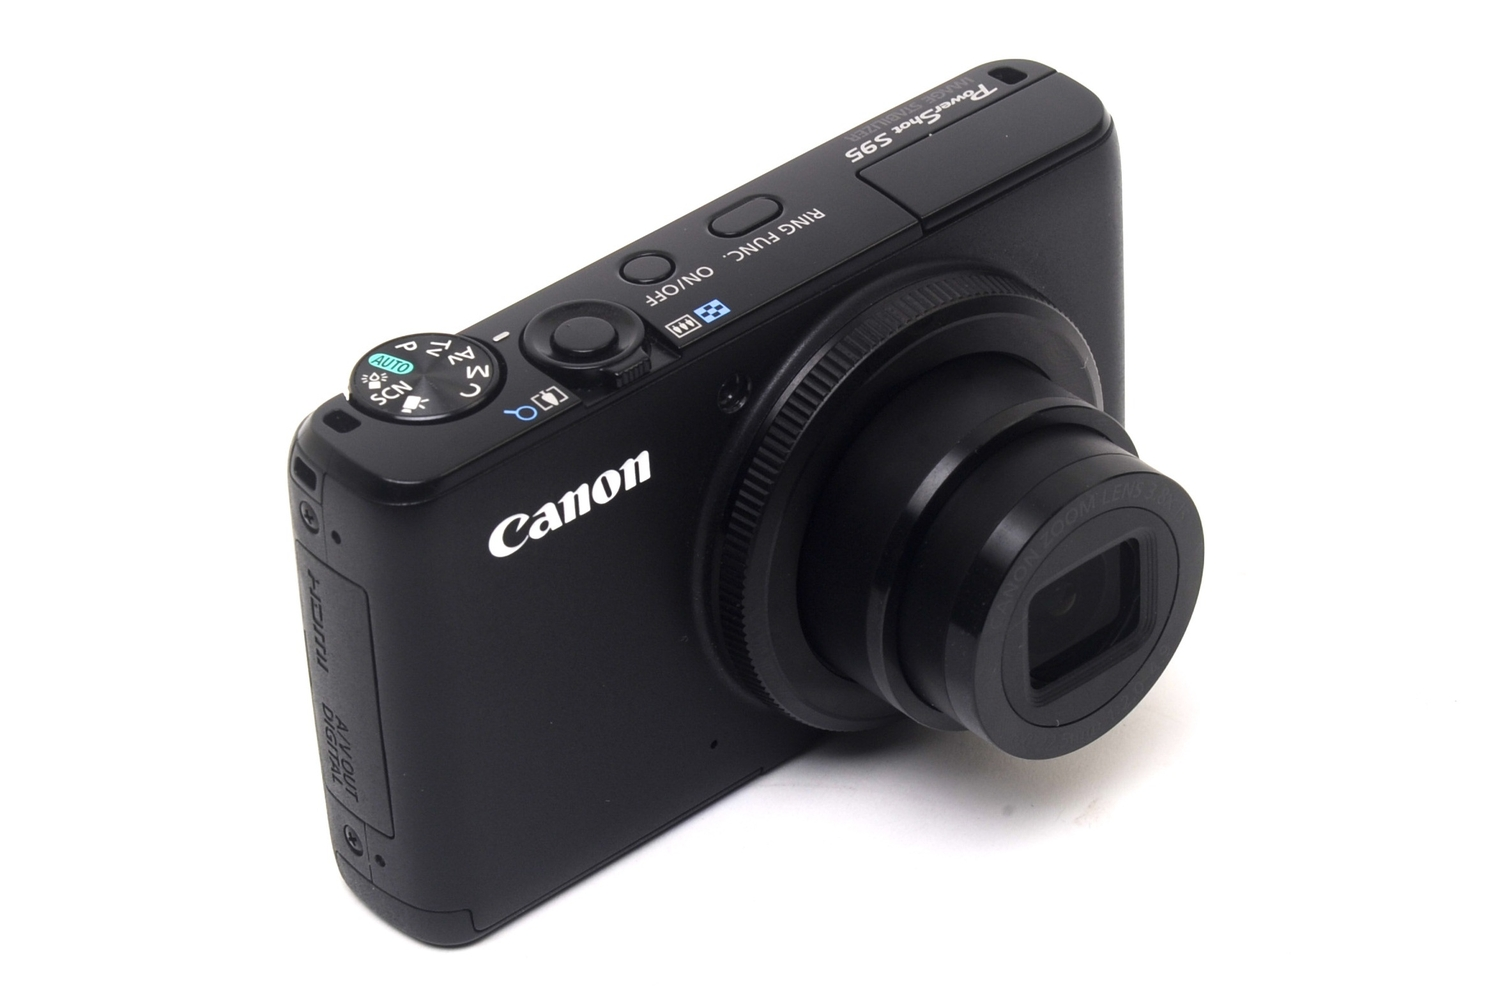 Canon powershot s95 review canon powershot s95 review for Camera and camera